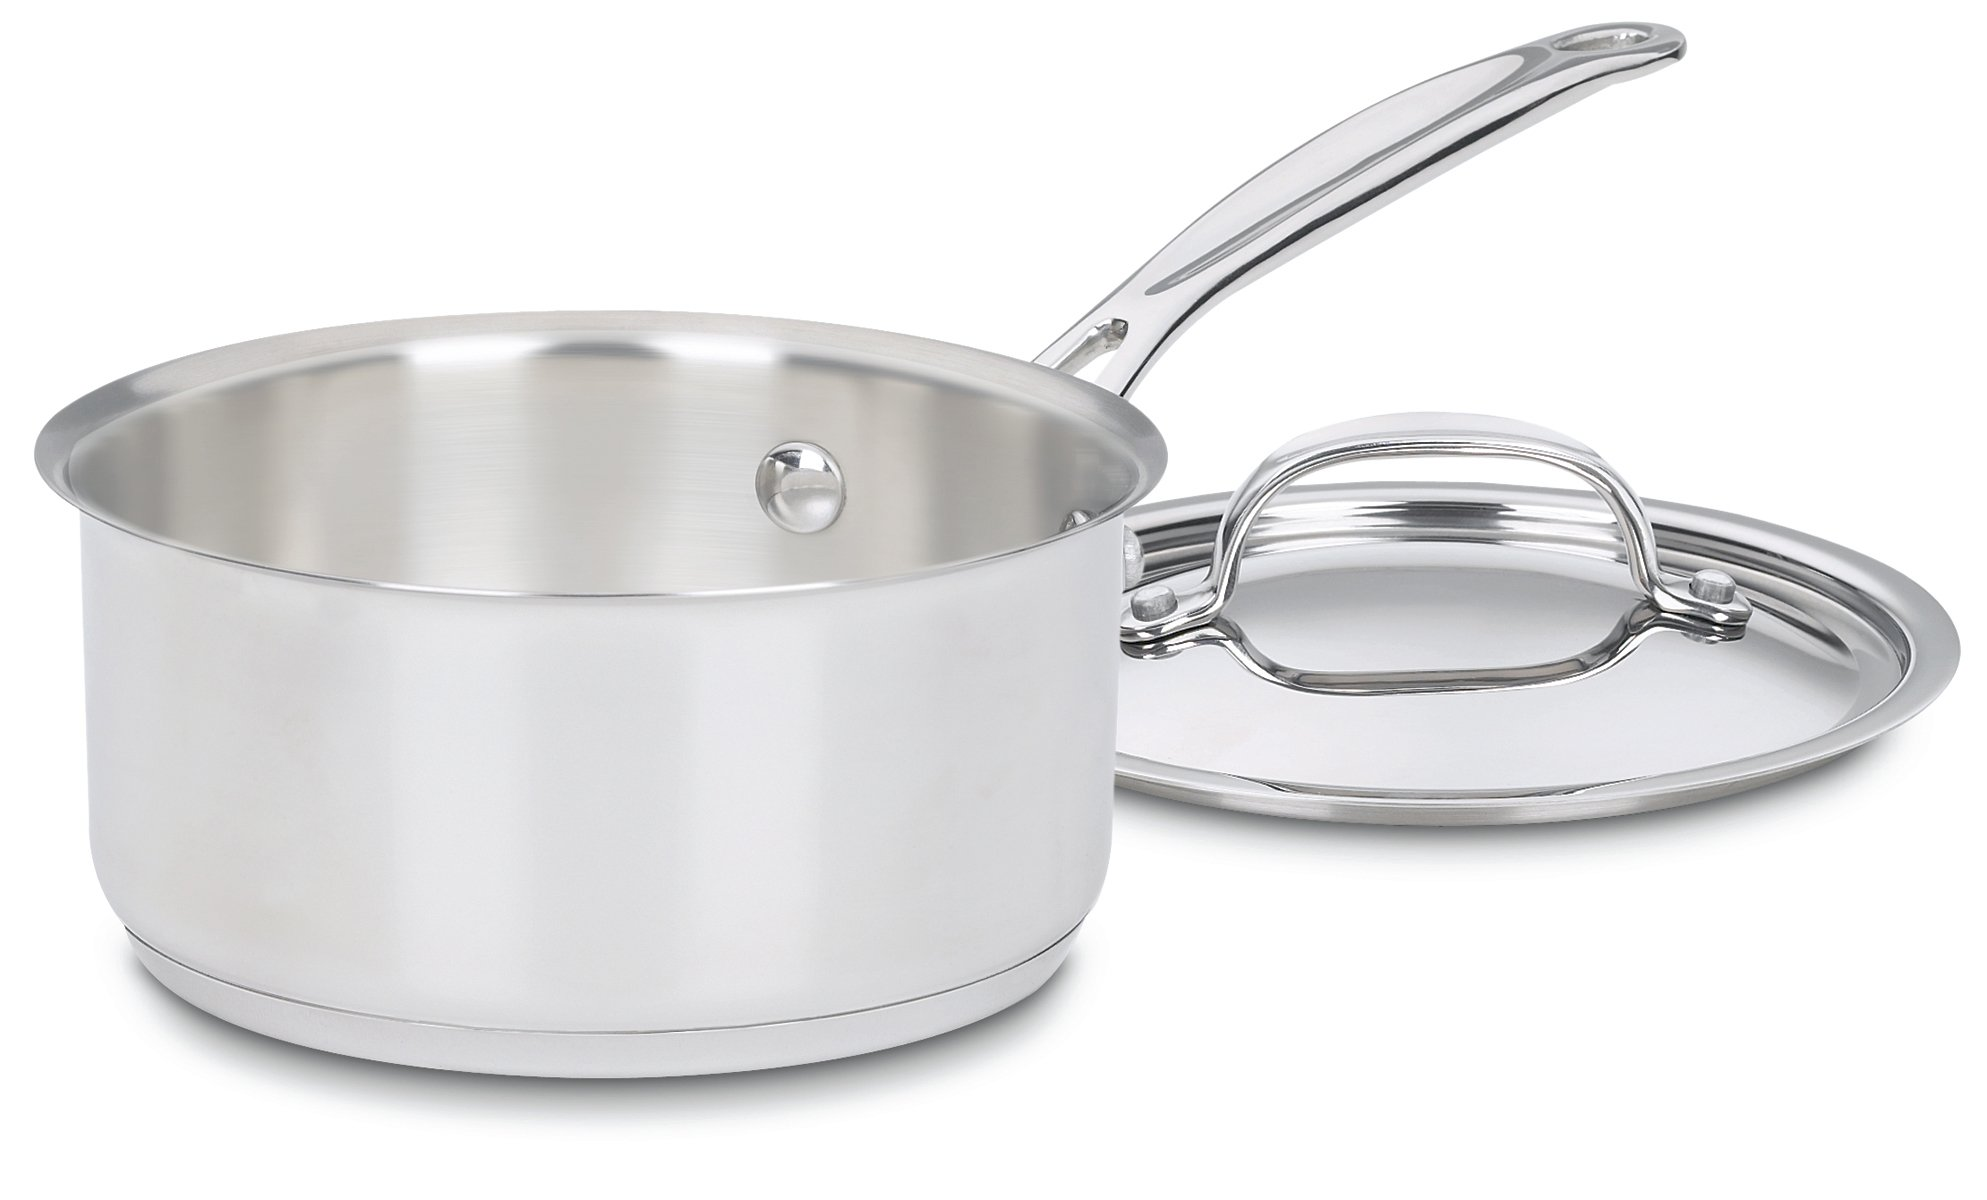 Cuisinart 719-16 Chef's Classic Stainless Saucepan with Cover, 1 1/2 Quart by Cuisinart